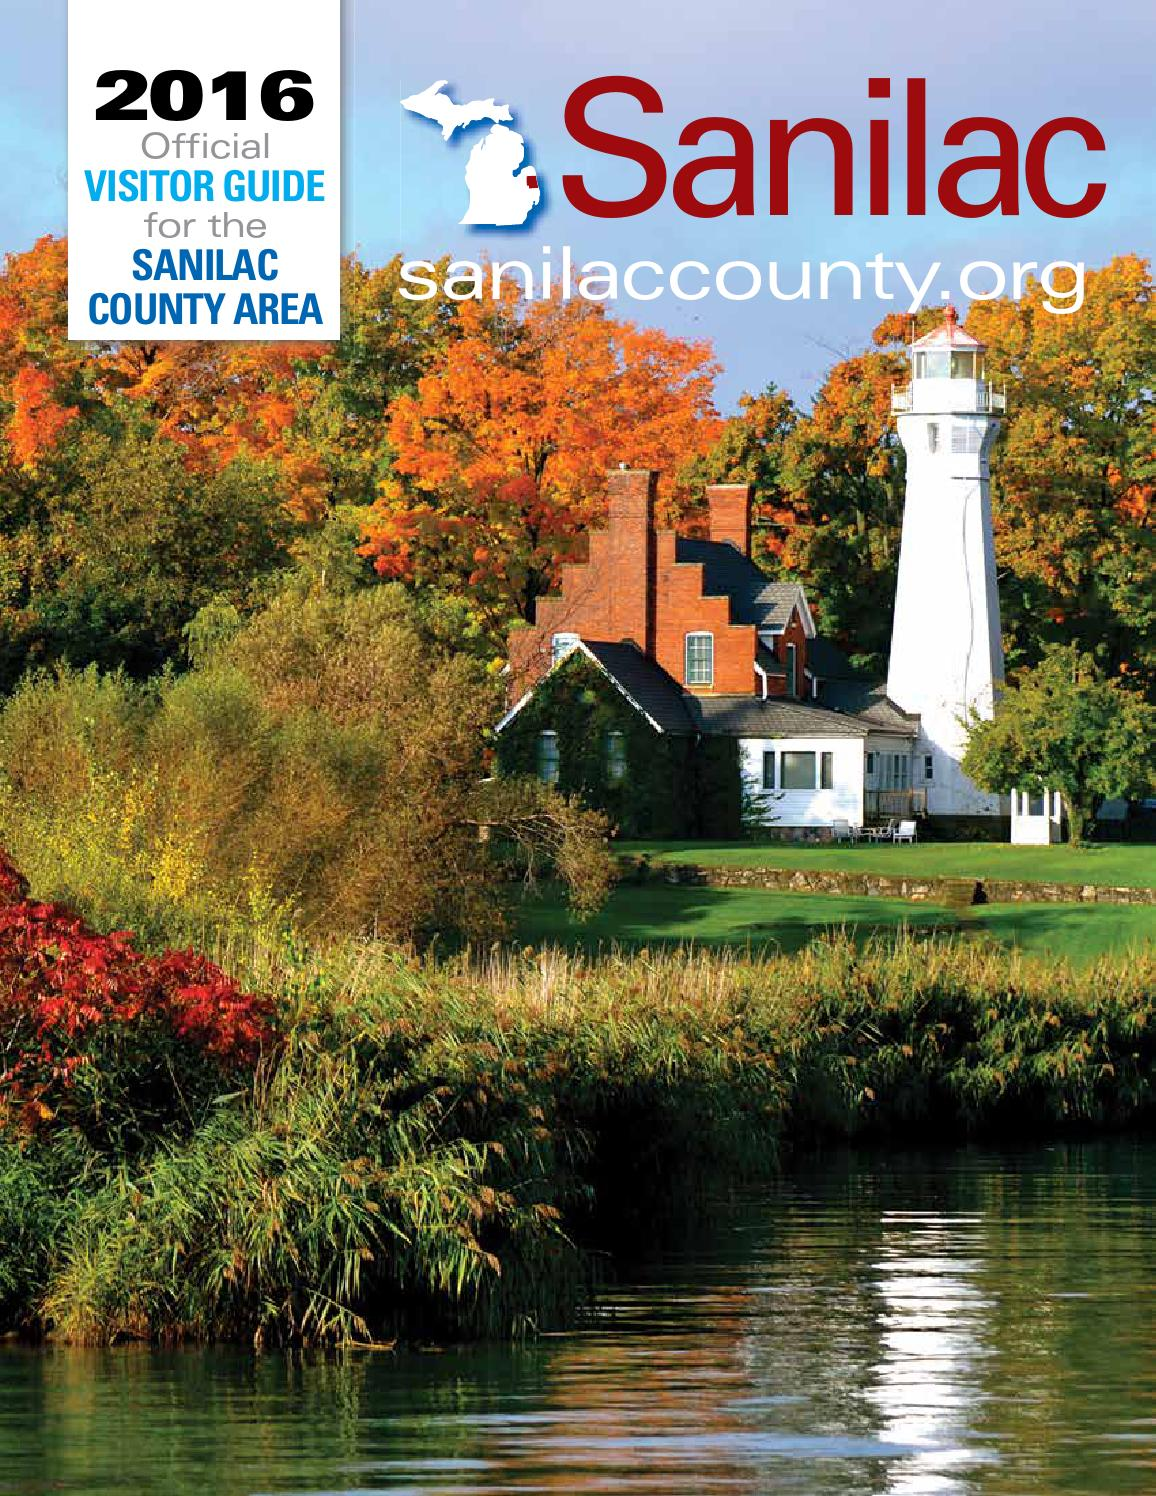 Michigan sanilac county croswell - 2016 Official Visitor Guide For The Sanilac County Area By Greatgetaways Issuu